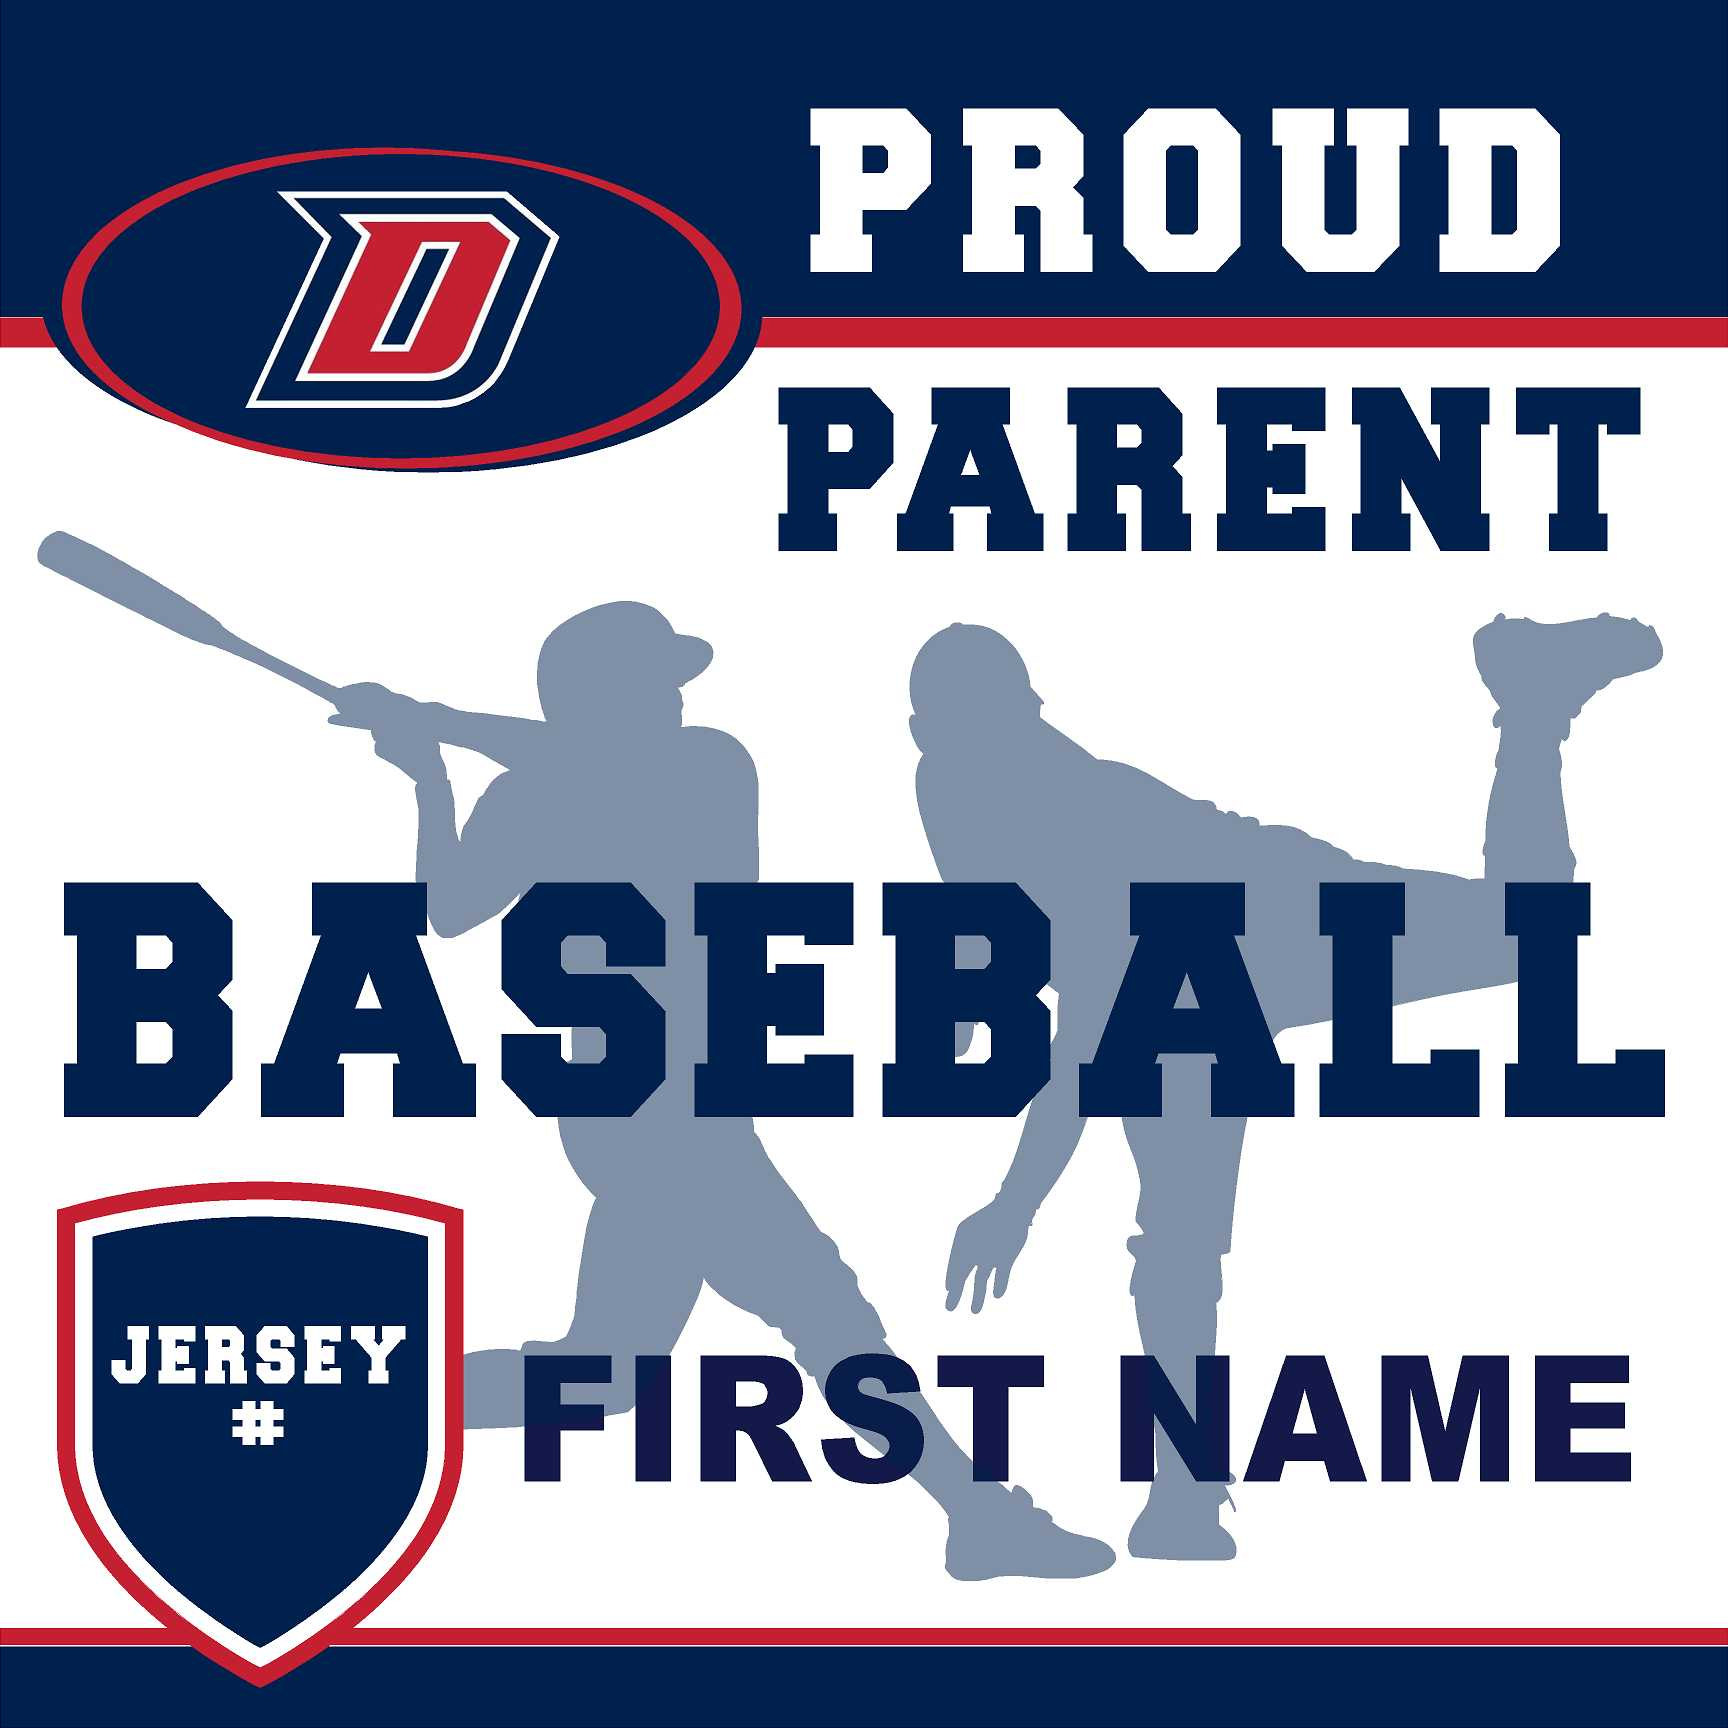 Dublin High School Baseball (Parent with Jersey #) 24x24 Yard Sign (includes installation in your yard)